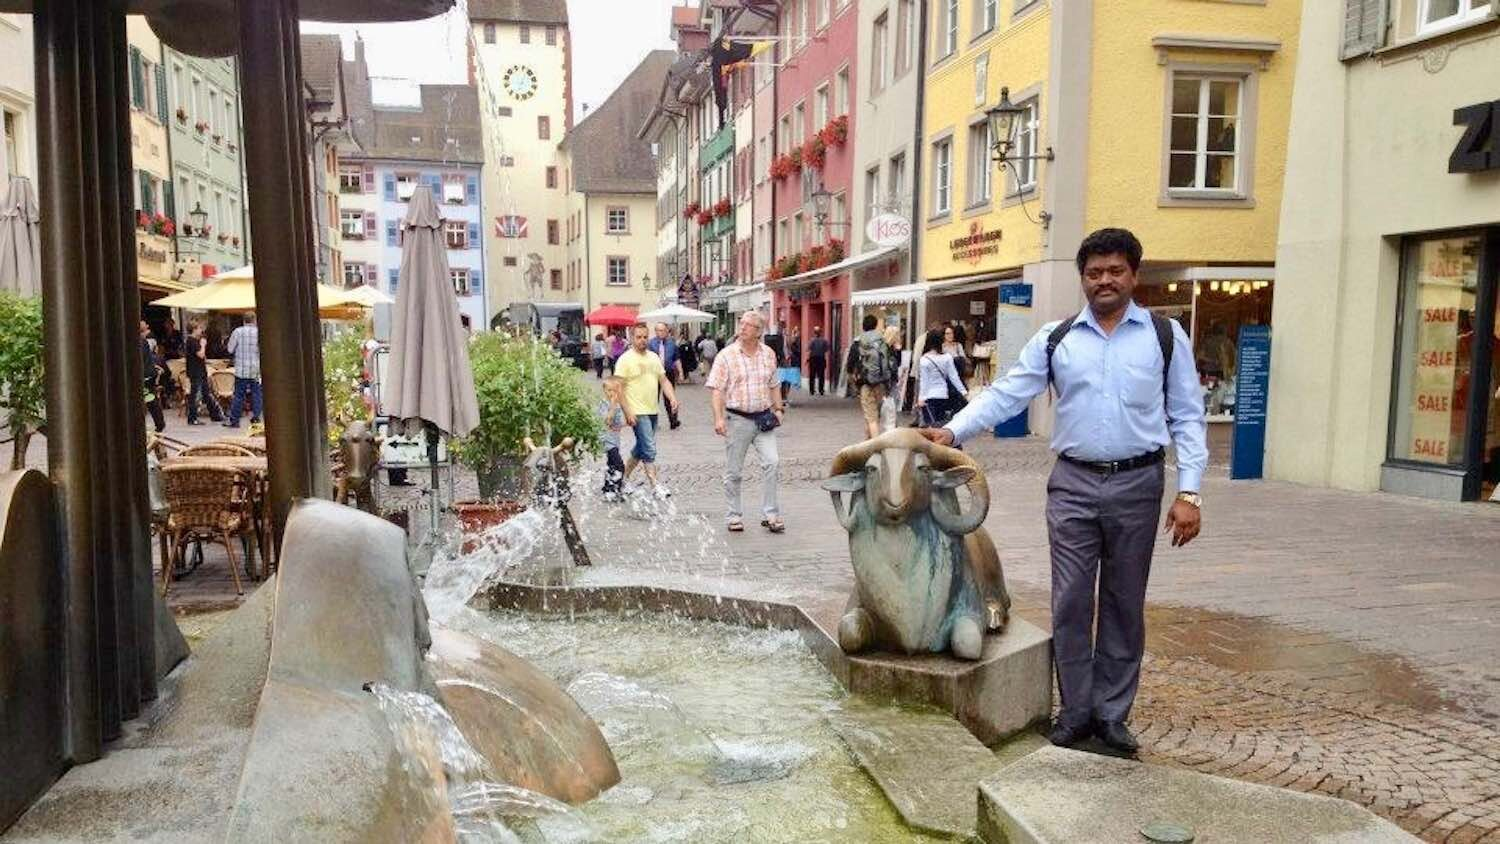 1 cyril yogi's past events in germany.jpeg